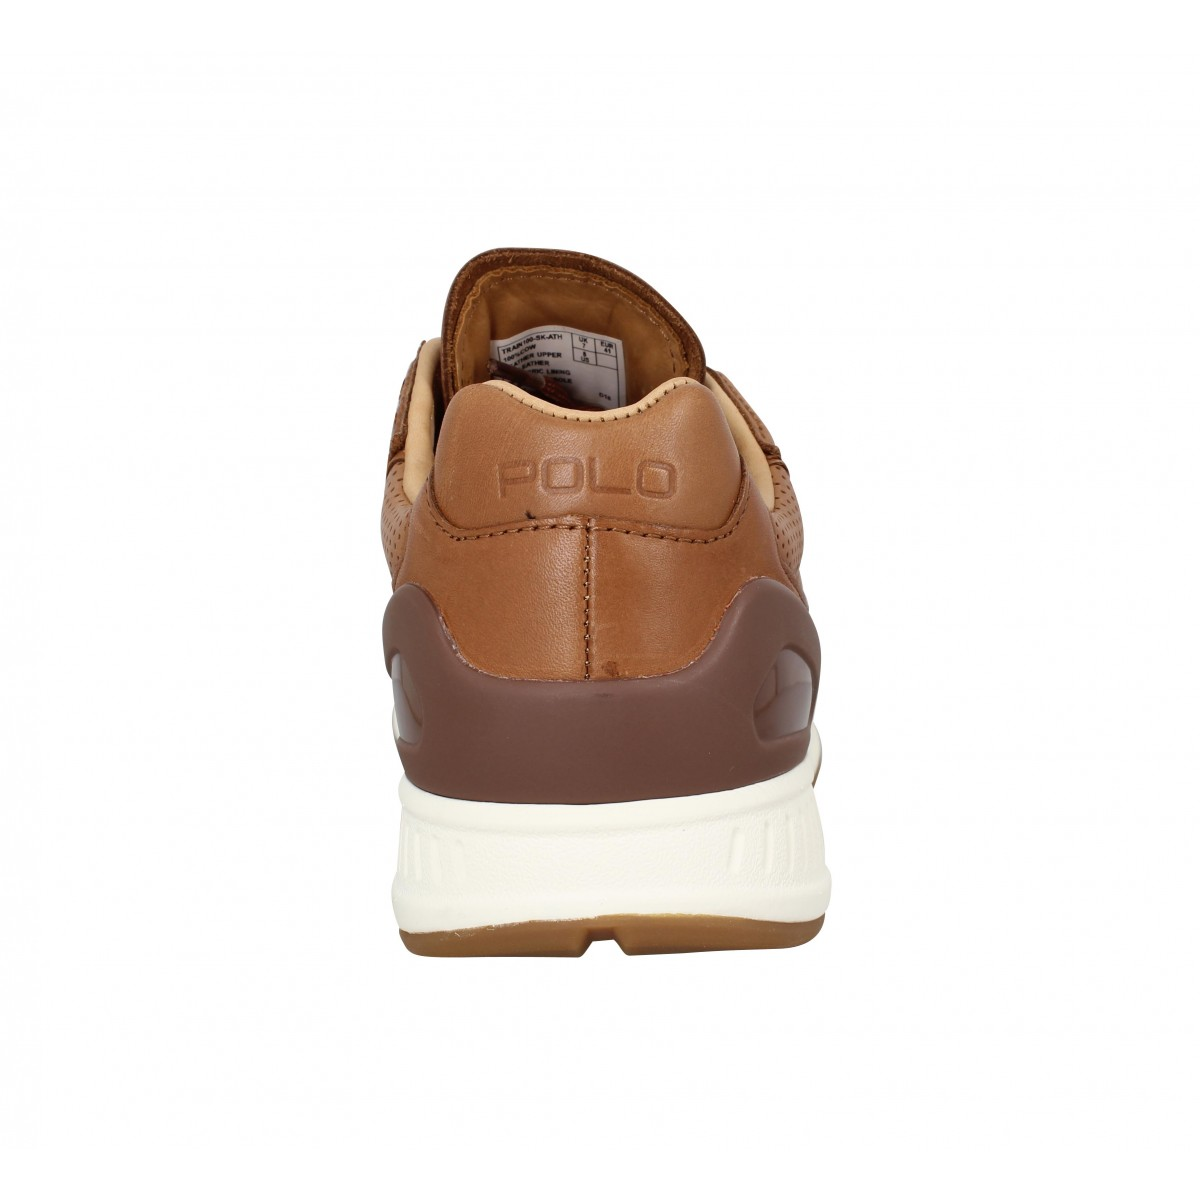 Polo ralph lauren train 100 cuir homme marron homme   Fanny chaussures fdaa78571a92